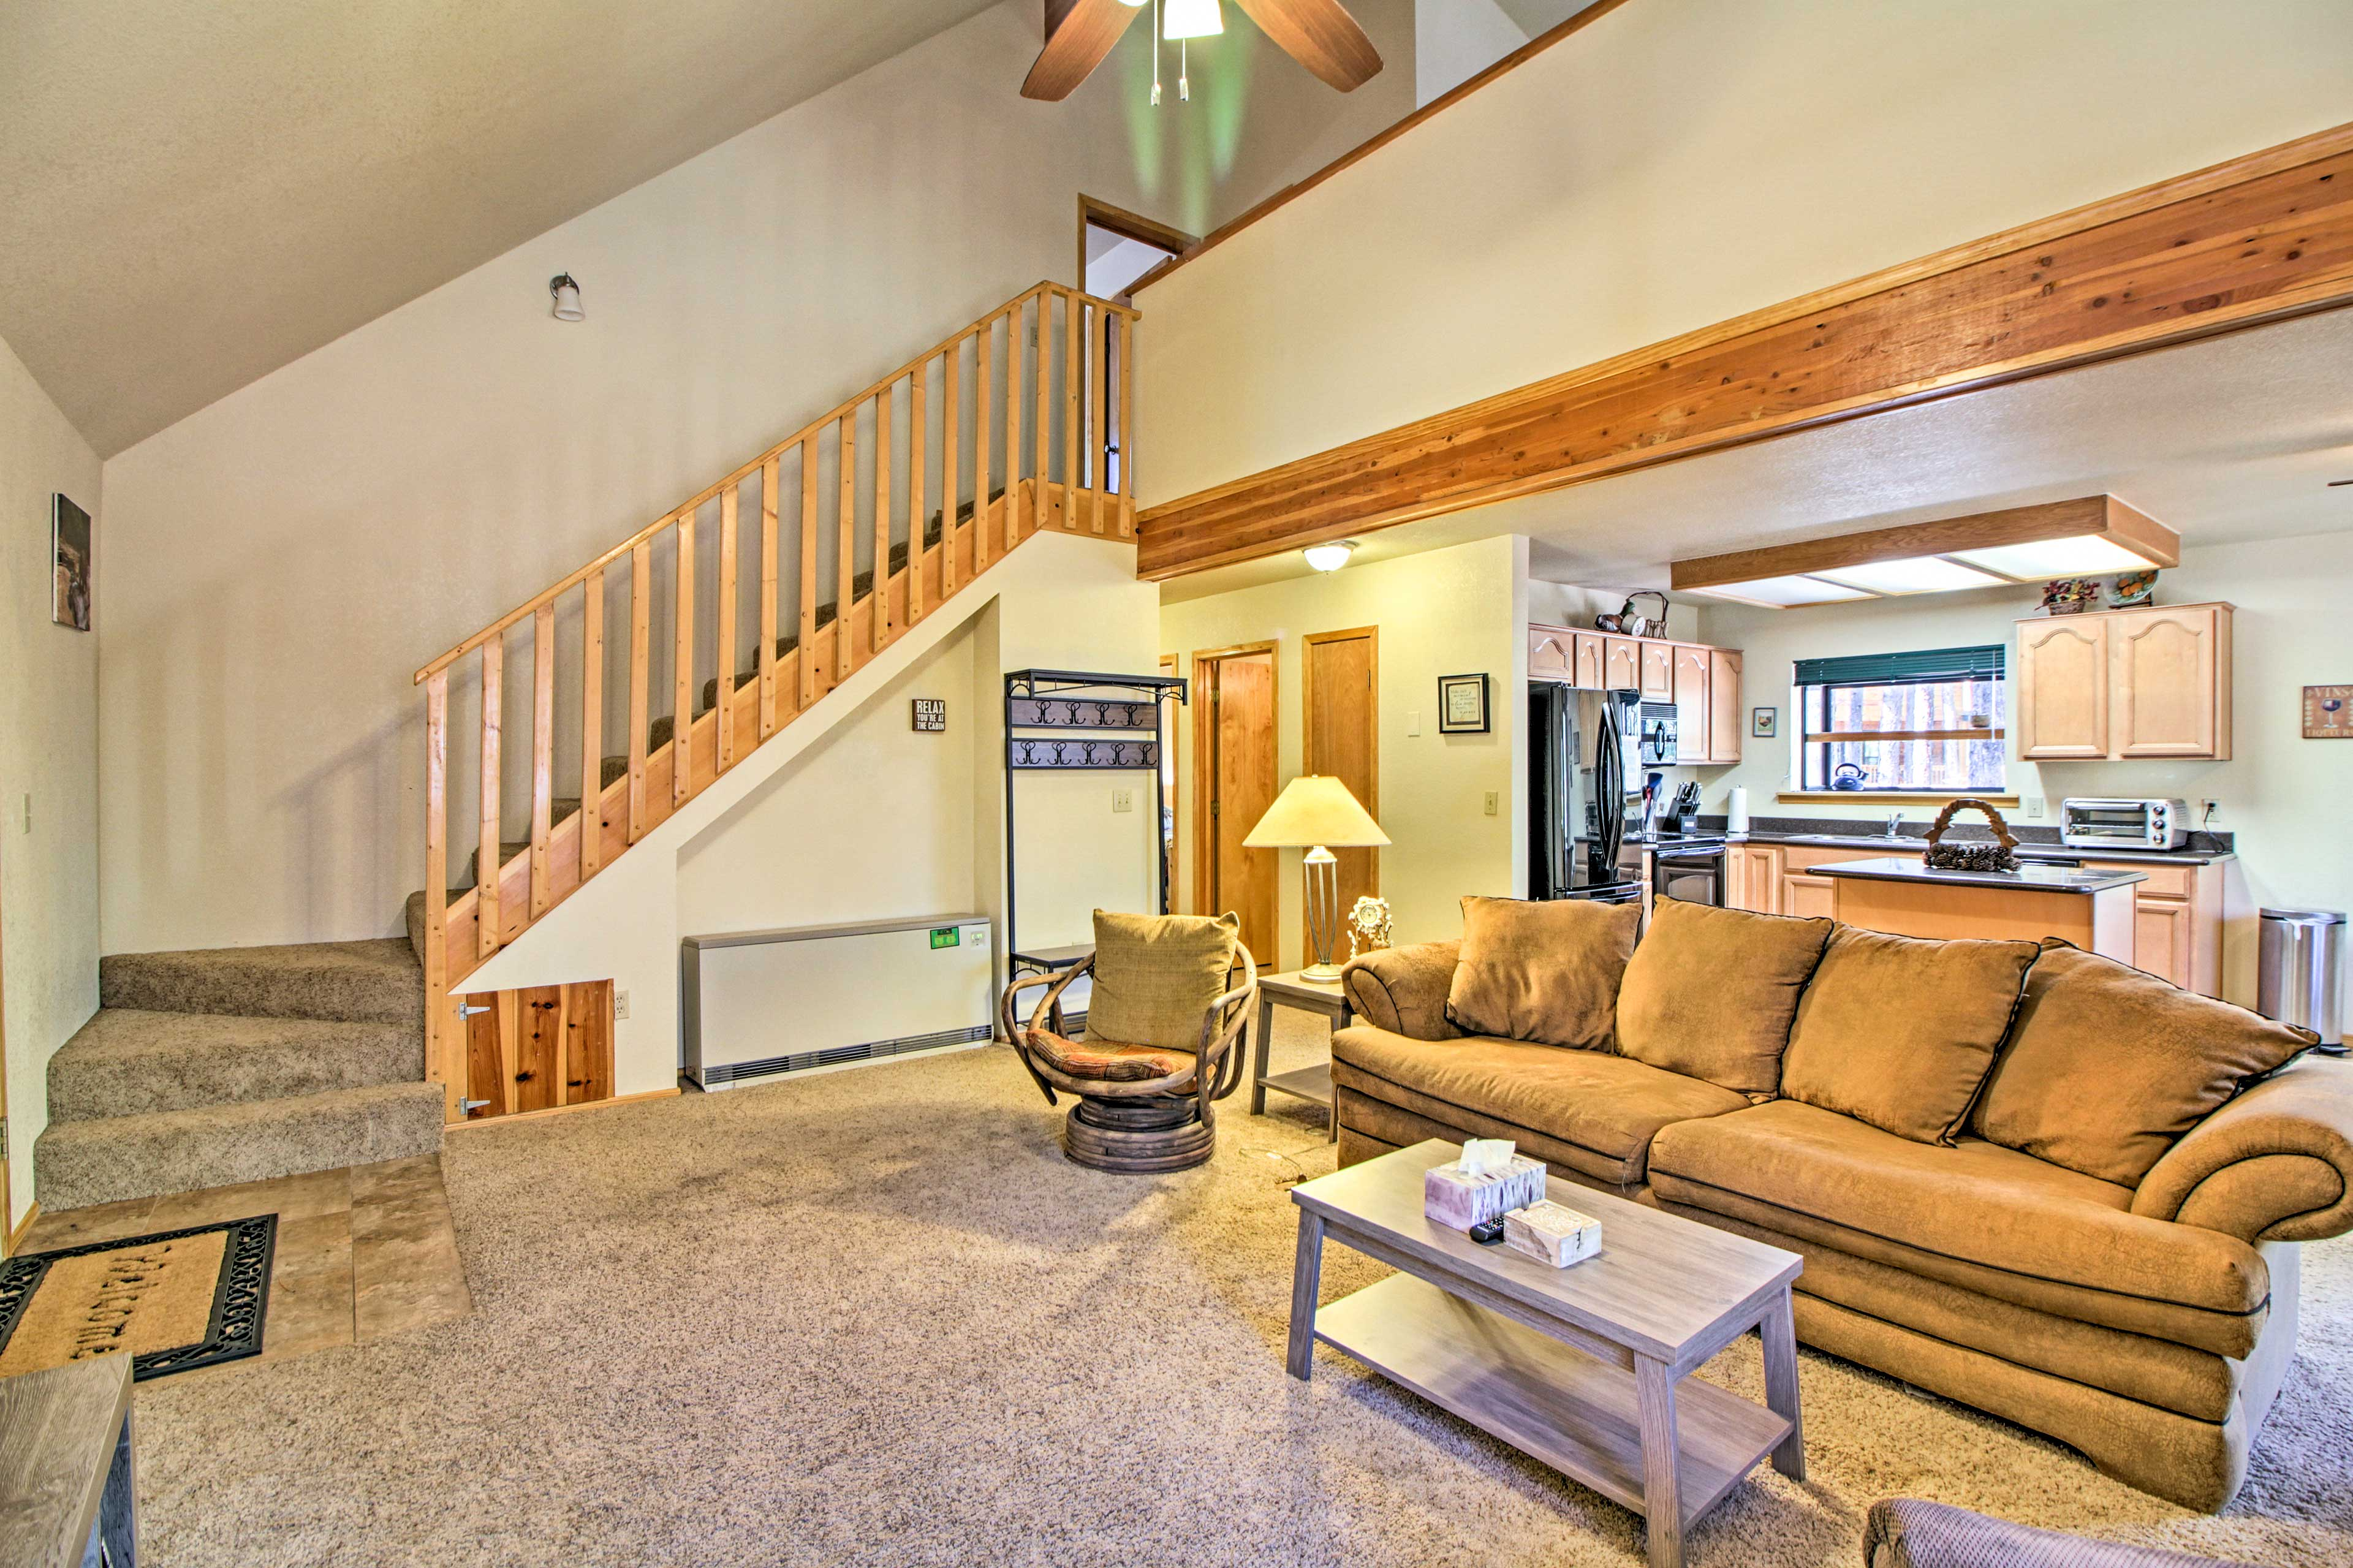 Stay connected with ease, thanks to the open layout and vaulted ceiling.